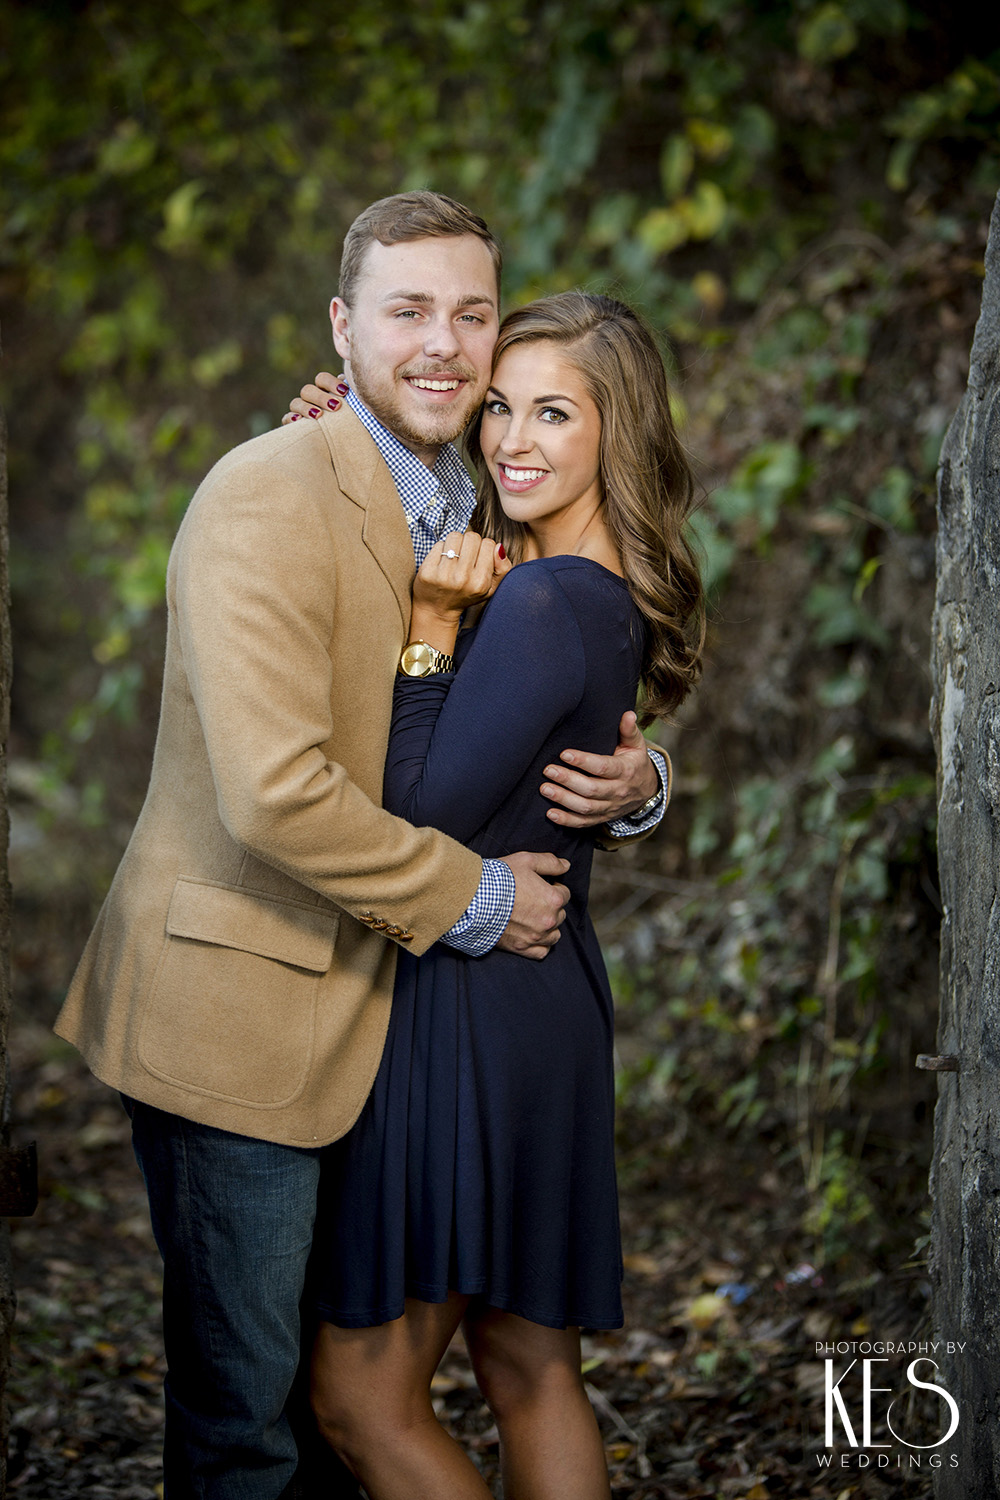 Katelynn_Ryan_Engagements_0331.JPG